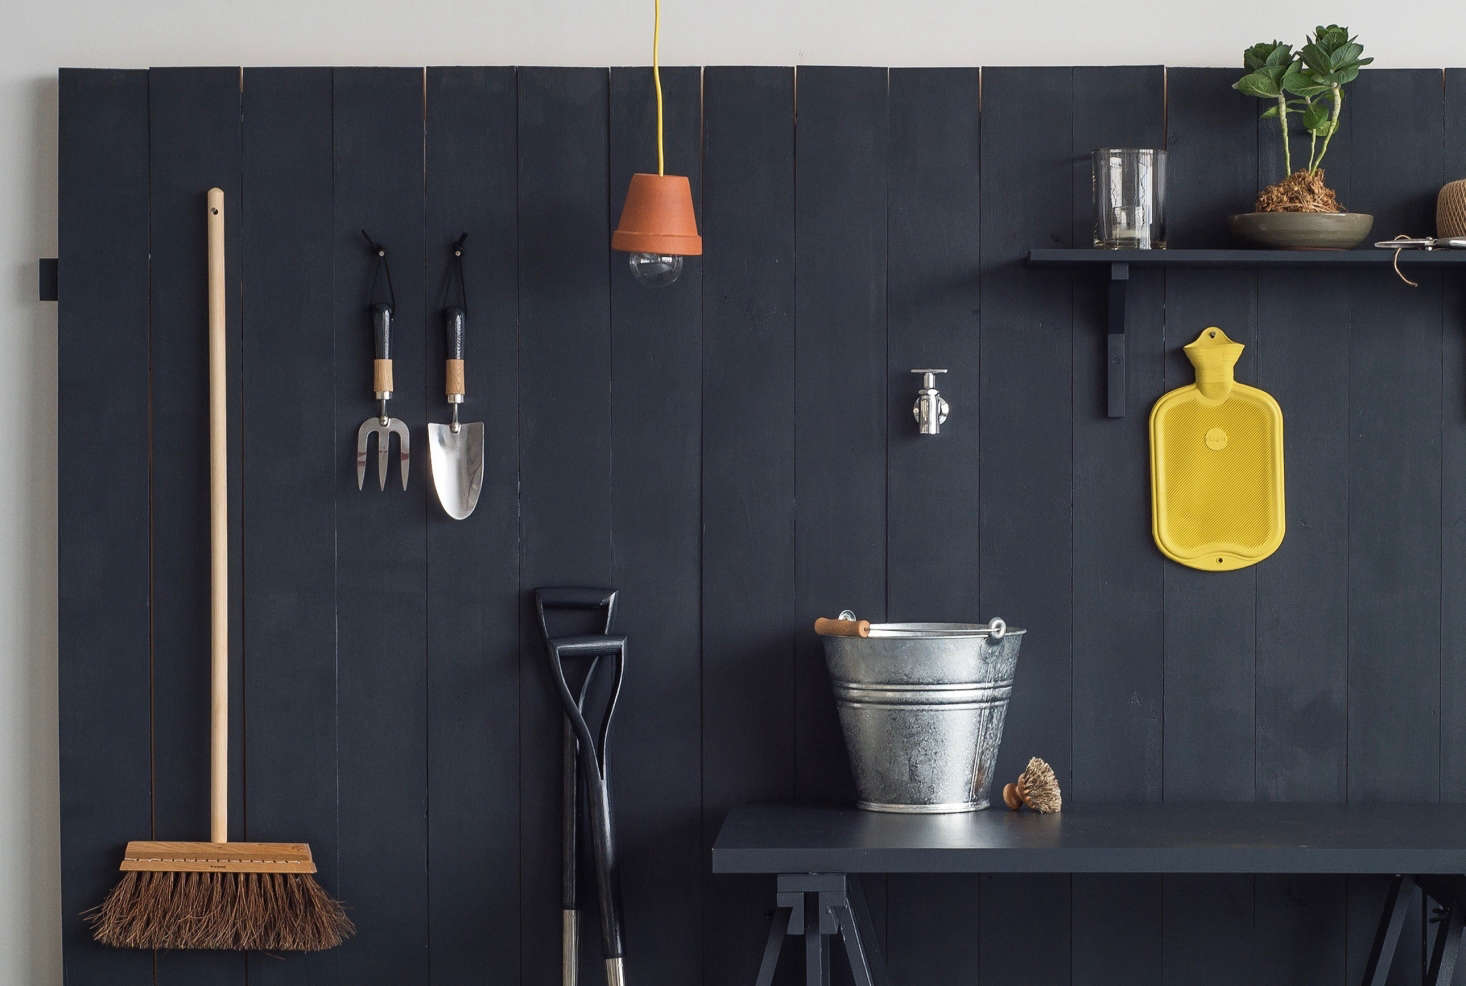 Stylish and practical, the flowerpot pendant light is one of 10 easy DIY projects in our Gardenista book.